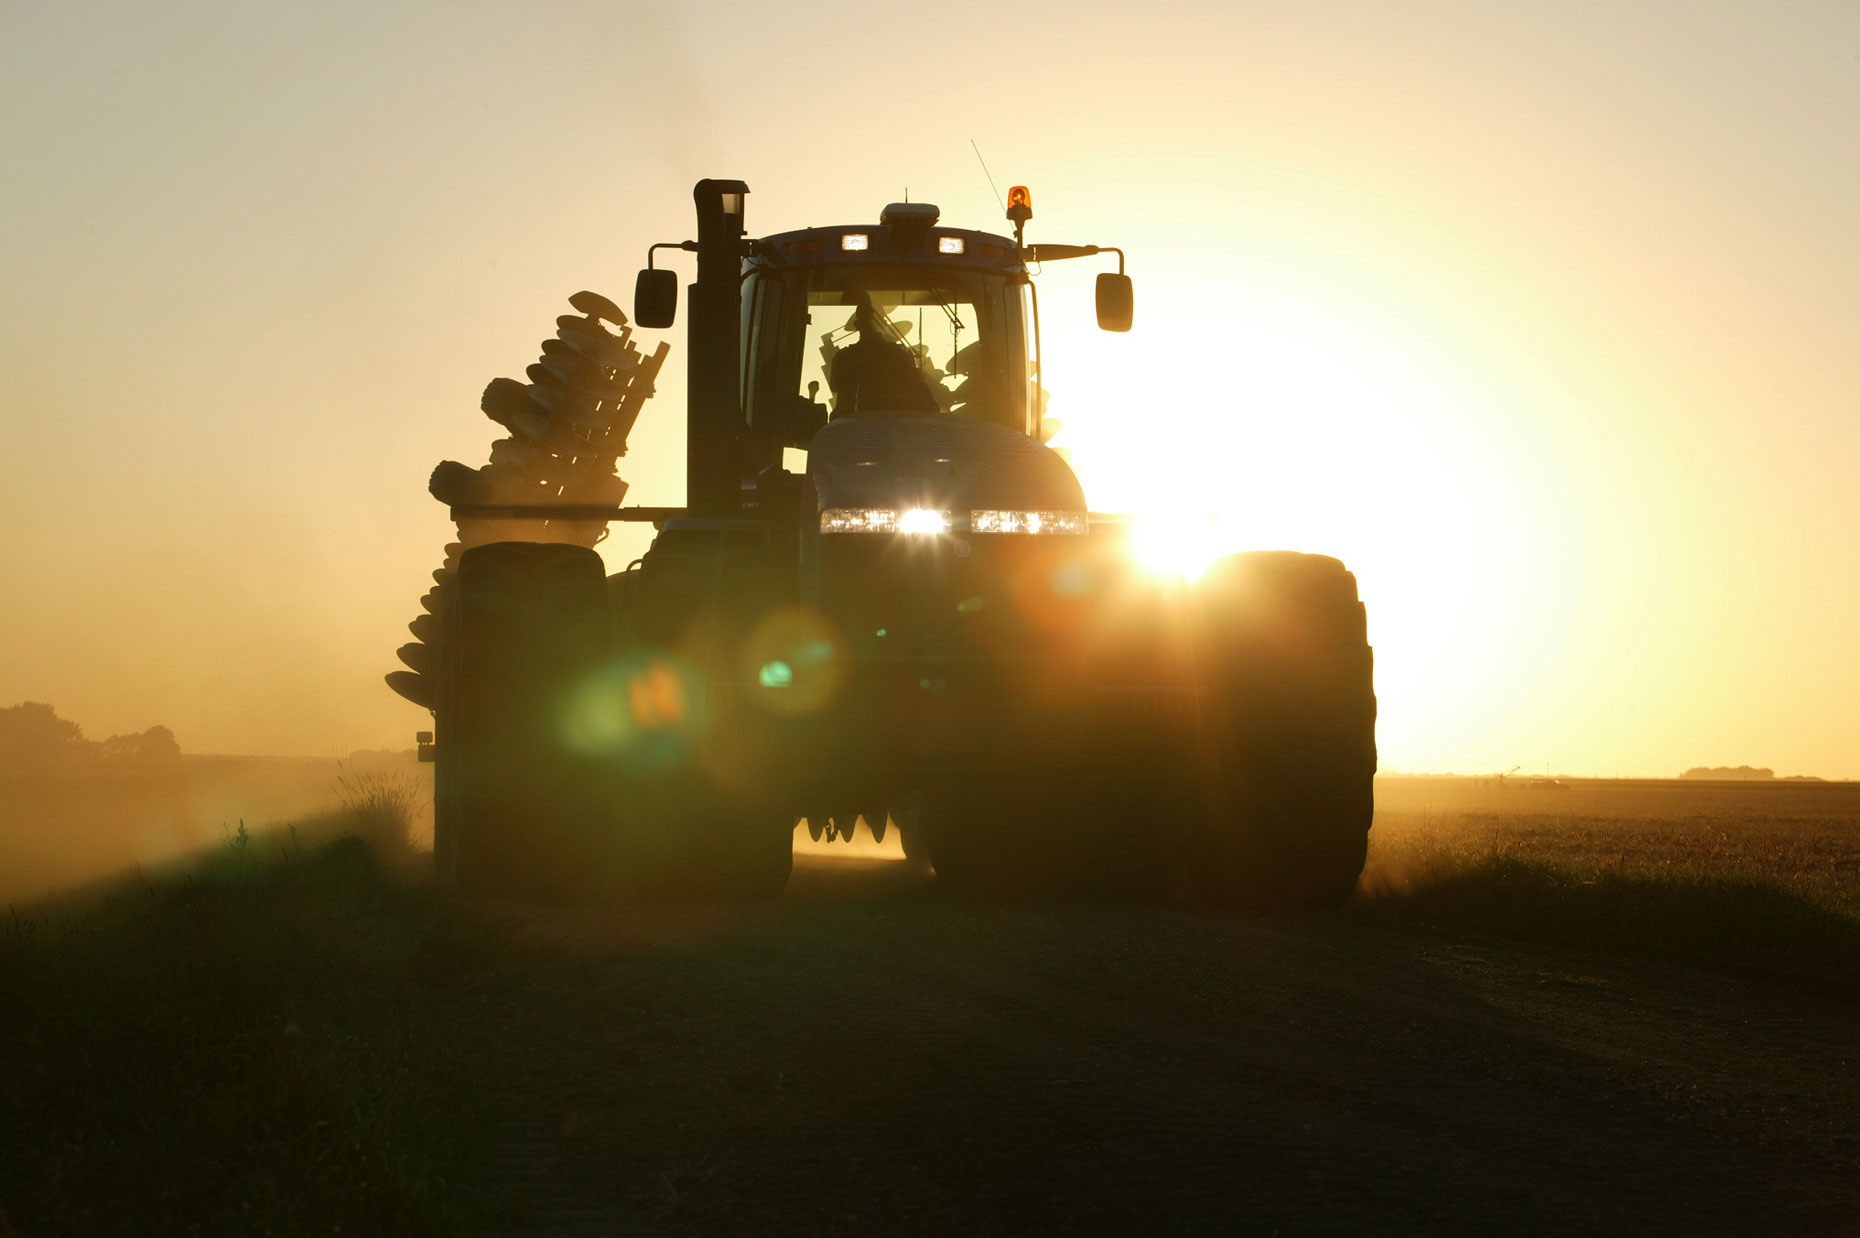 4wd Tractor Driving Through Fields at Sunrise